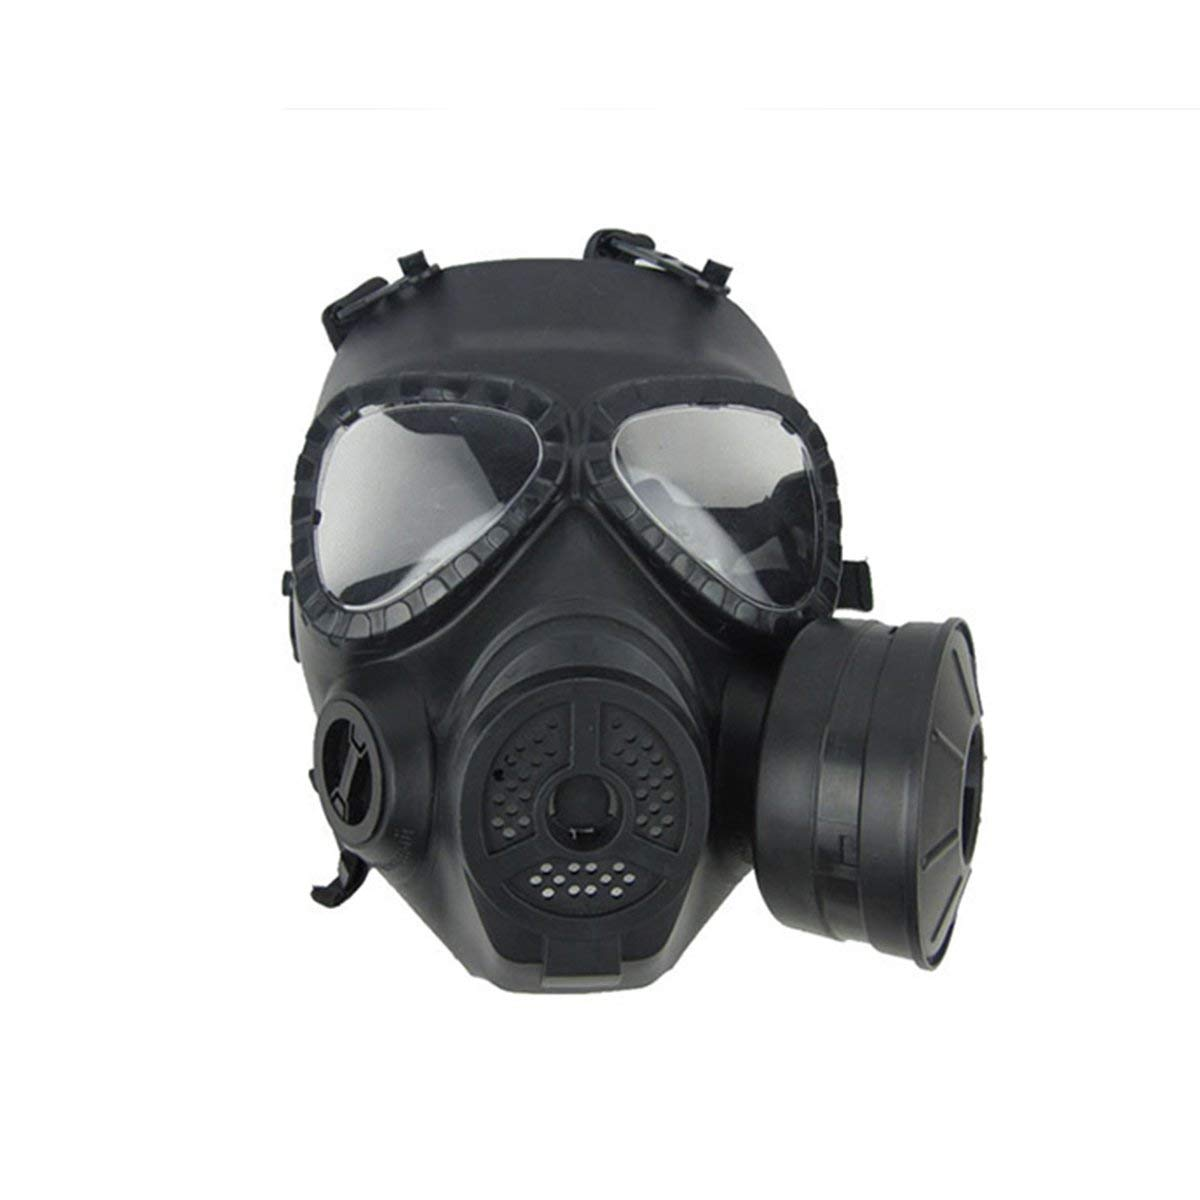 Back To Search Resultssports & Entertainment M04 Fan Air Conditioning Skull Biochemical Gas Mask Paintball Airsoft Mask Army Military Equipment Macka Respirator Mascara High Quality Goods